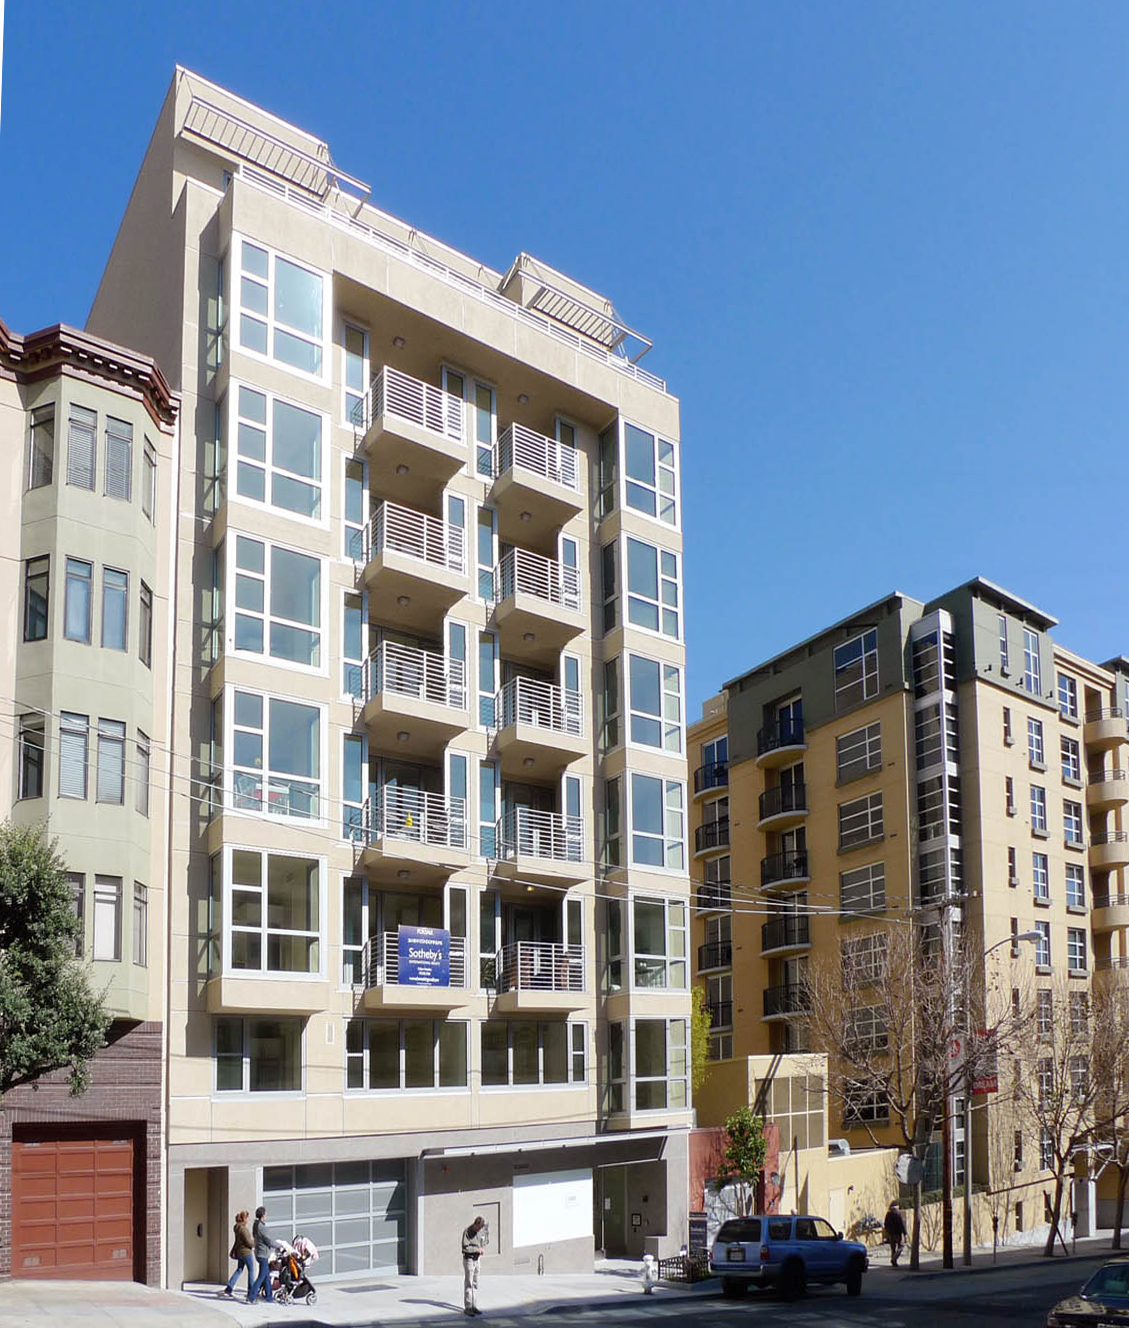 Apartment San Francisco: New Apartment Building In San Francisco